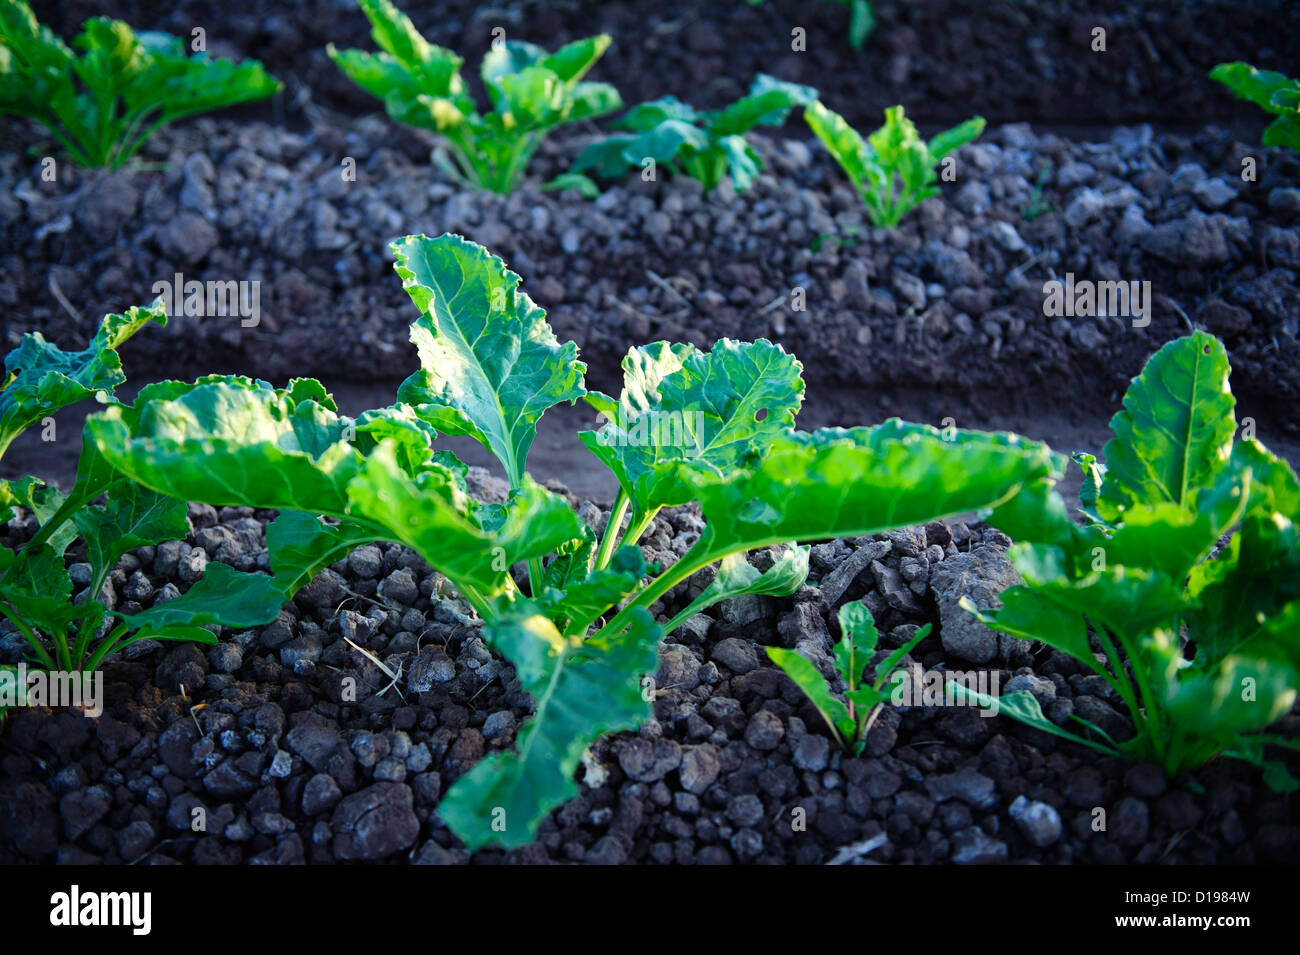 Sugar Beet field in the Imperial Valley of California - Stock Image